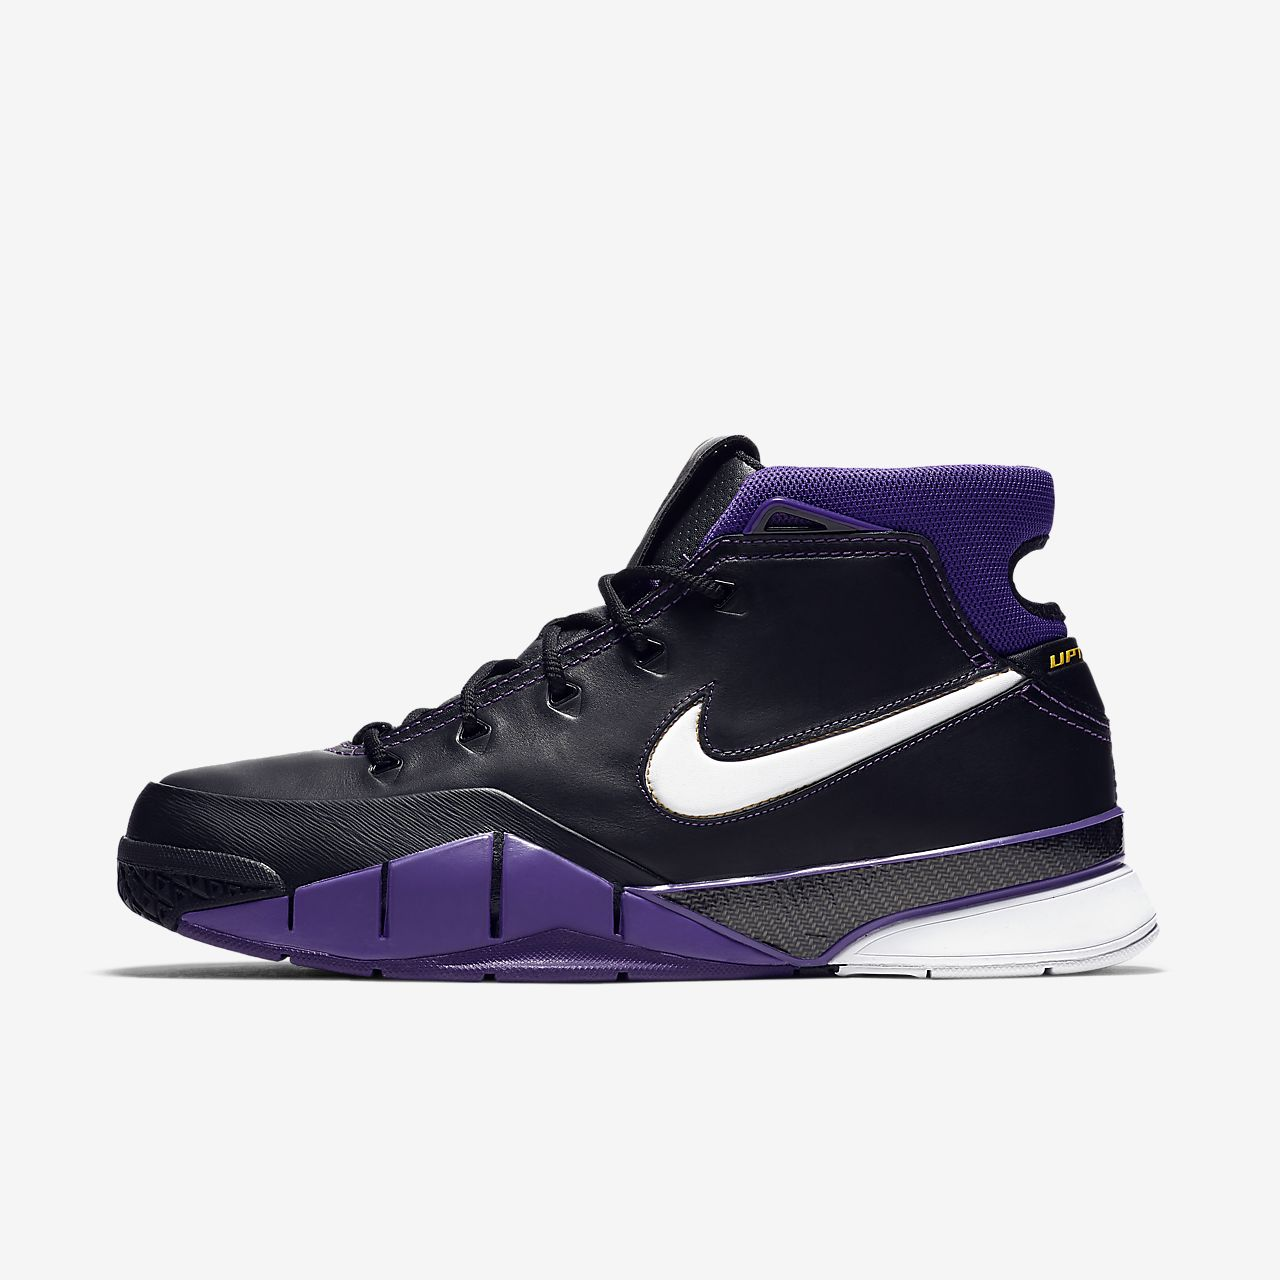 14665e795132b5 Kobe 1 Protro Basketball Shoe. Nike.com NZ